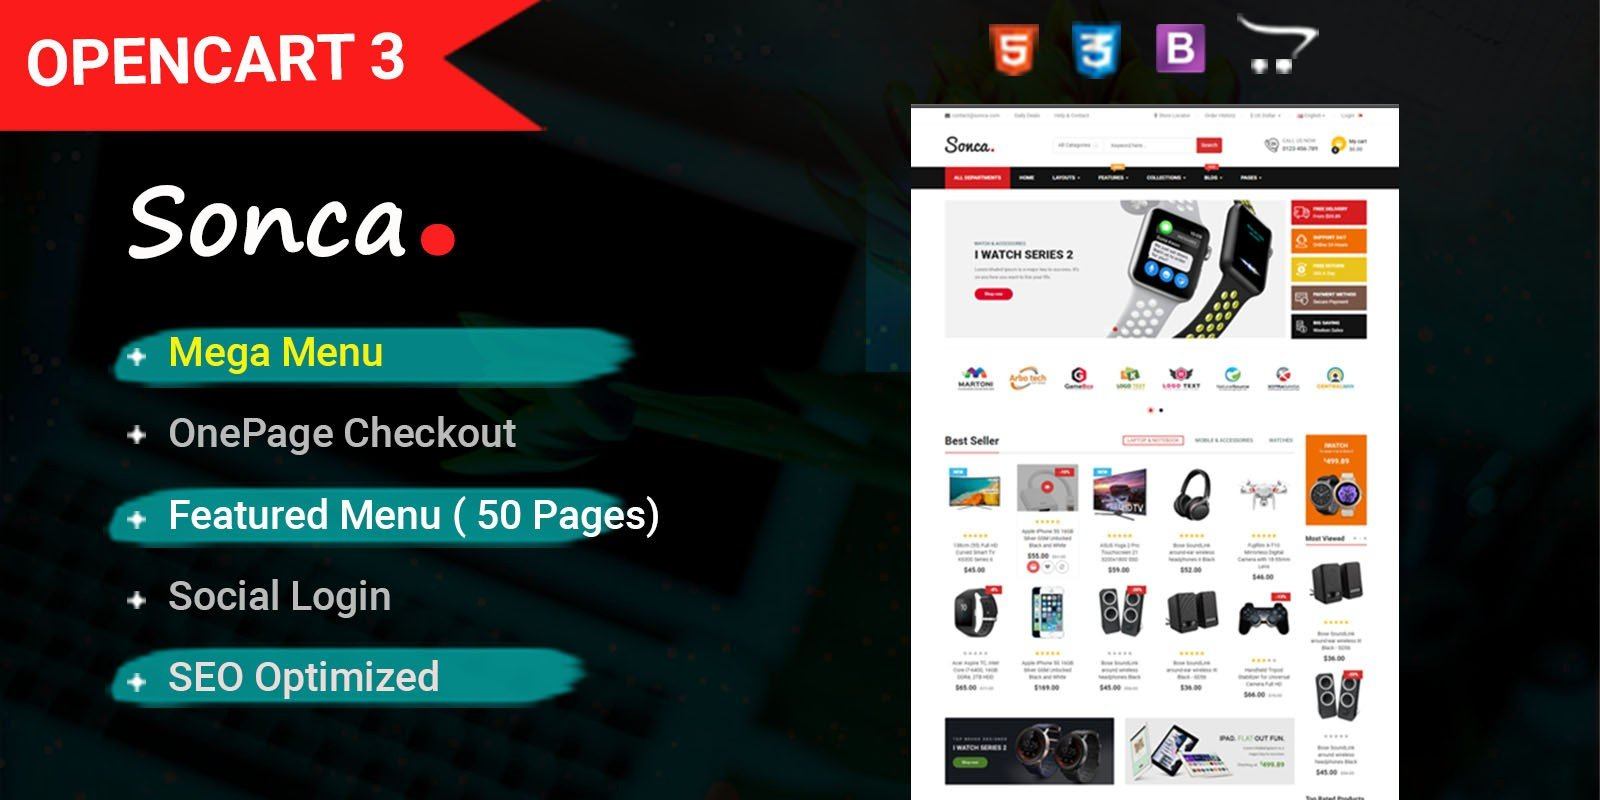 So Sonca - Responsive OpenCart 3 Theme